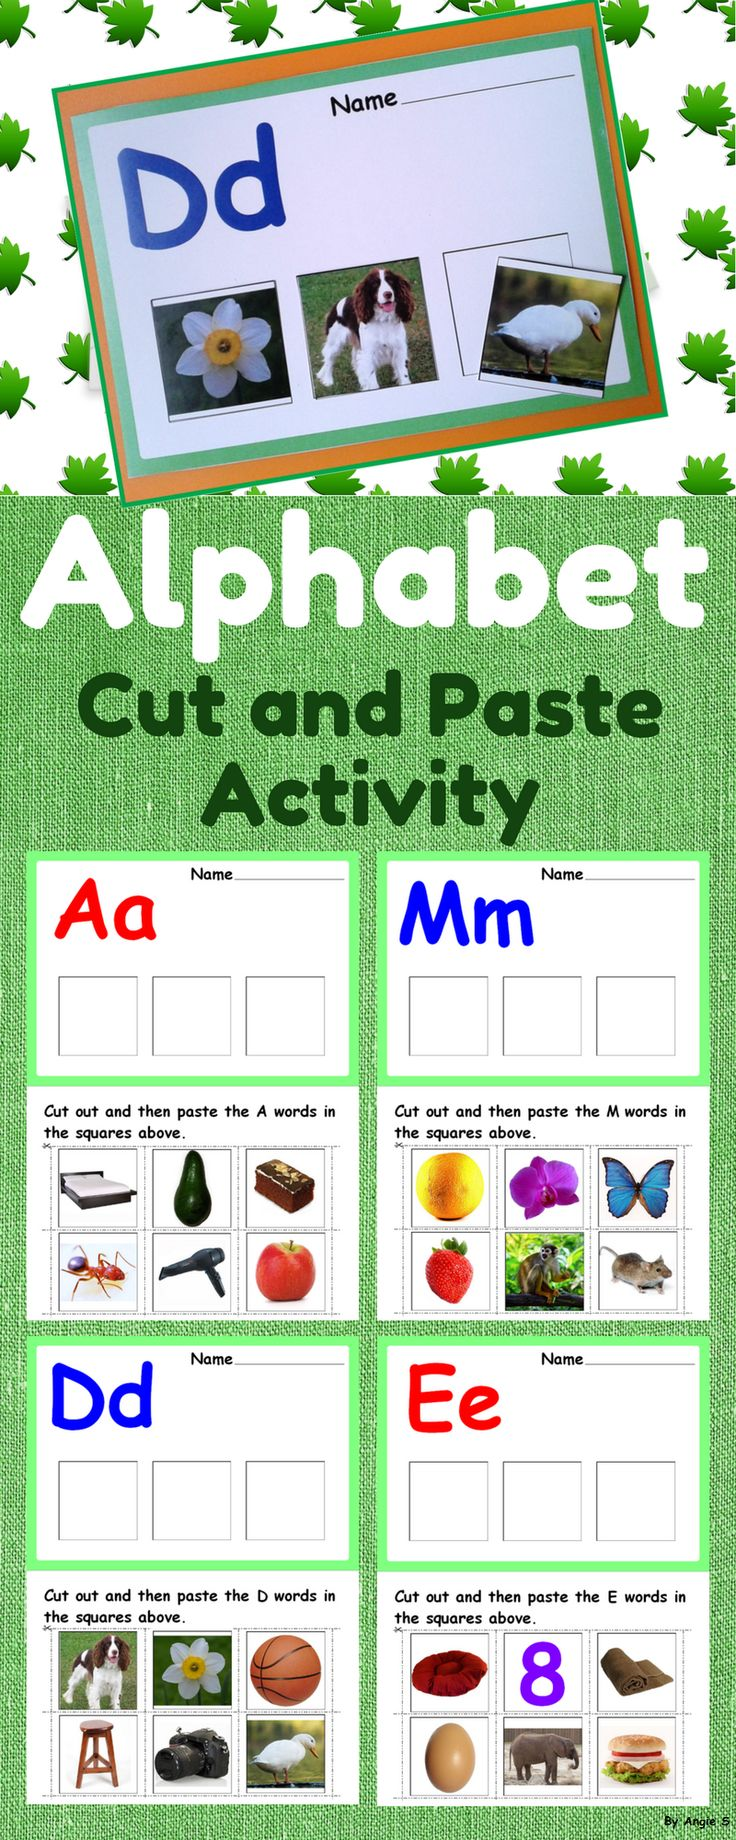 Back to School Alphabet Cut and Paste Activity, Beginning Sounds for Autism, Special Education, Kindergarten, 1st, ESL. The cut and paste worksheets are meant to help children learn and recognize letters and distinguish the initial sound in a word. This is an activity for learning the alphabet. After recognizing the letter on the page, the student will pronounce the name of each picture. #alphabet #cutandpaste #sped #kindergarten #speechtherapy #backtoschool #letters #phonics